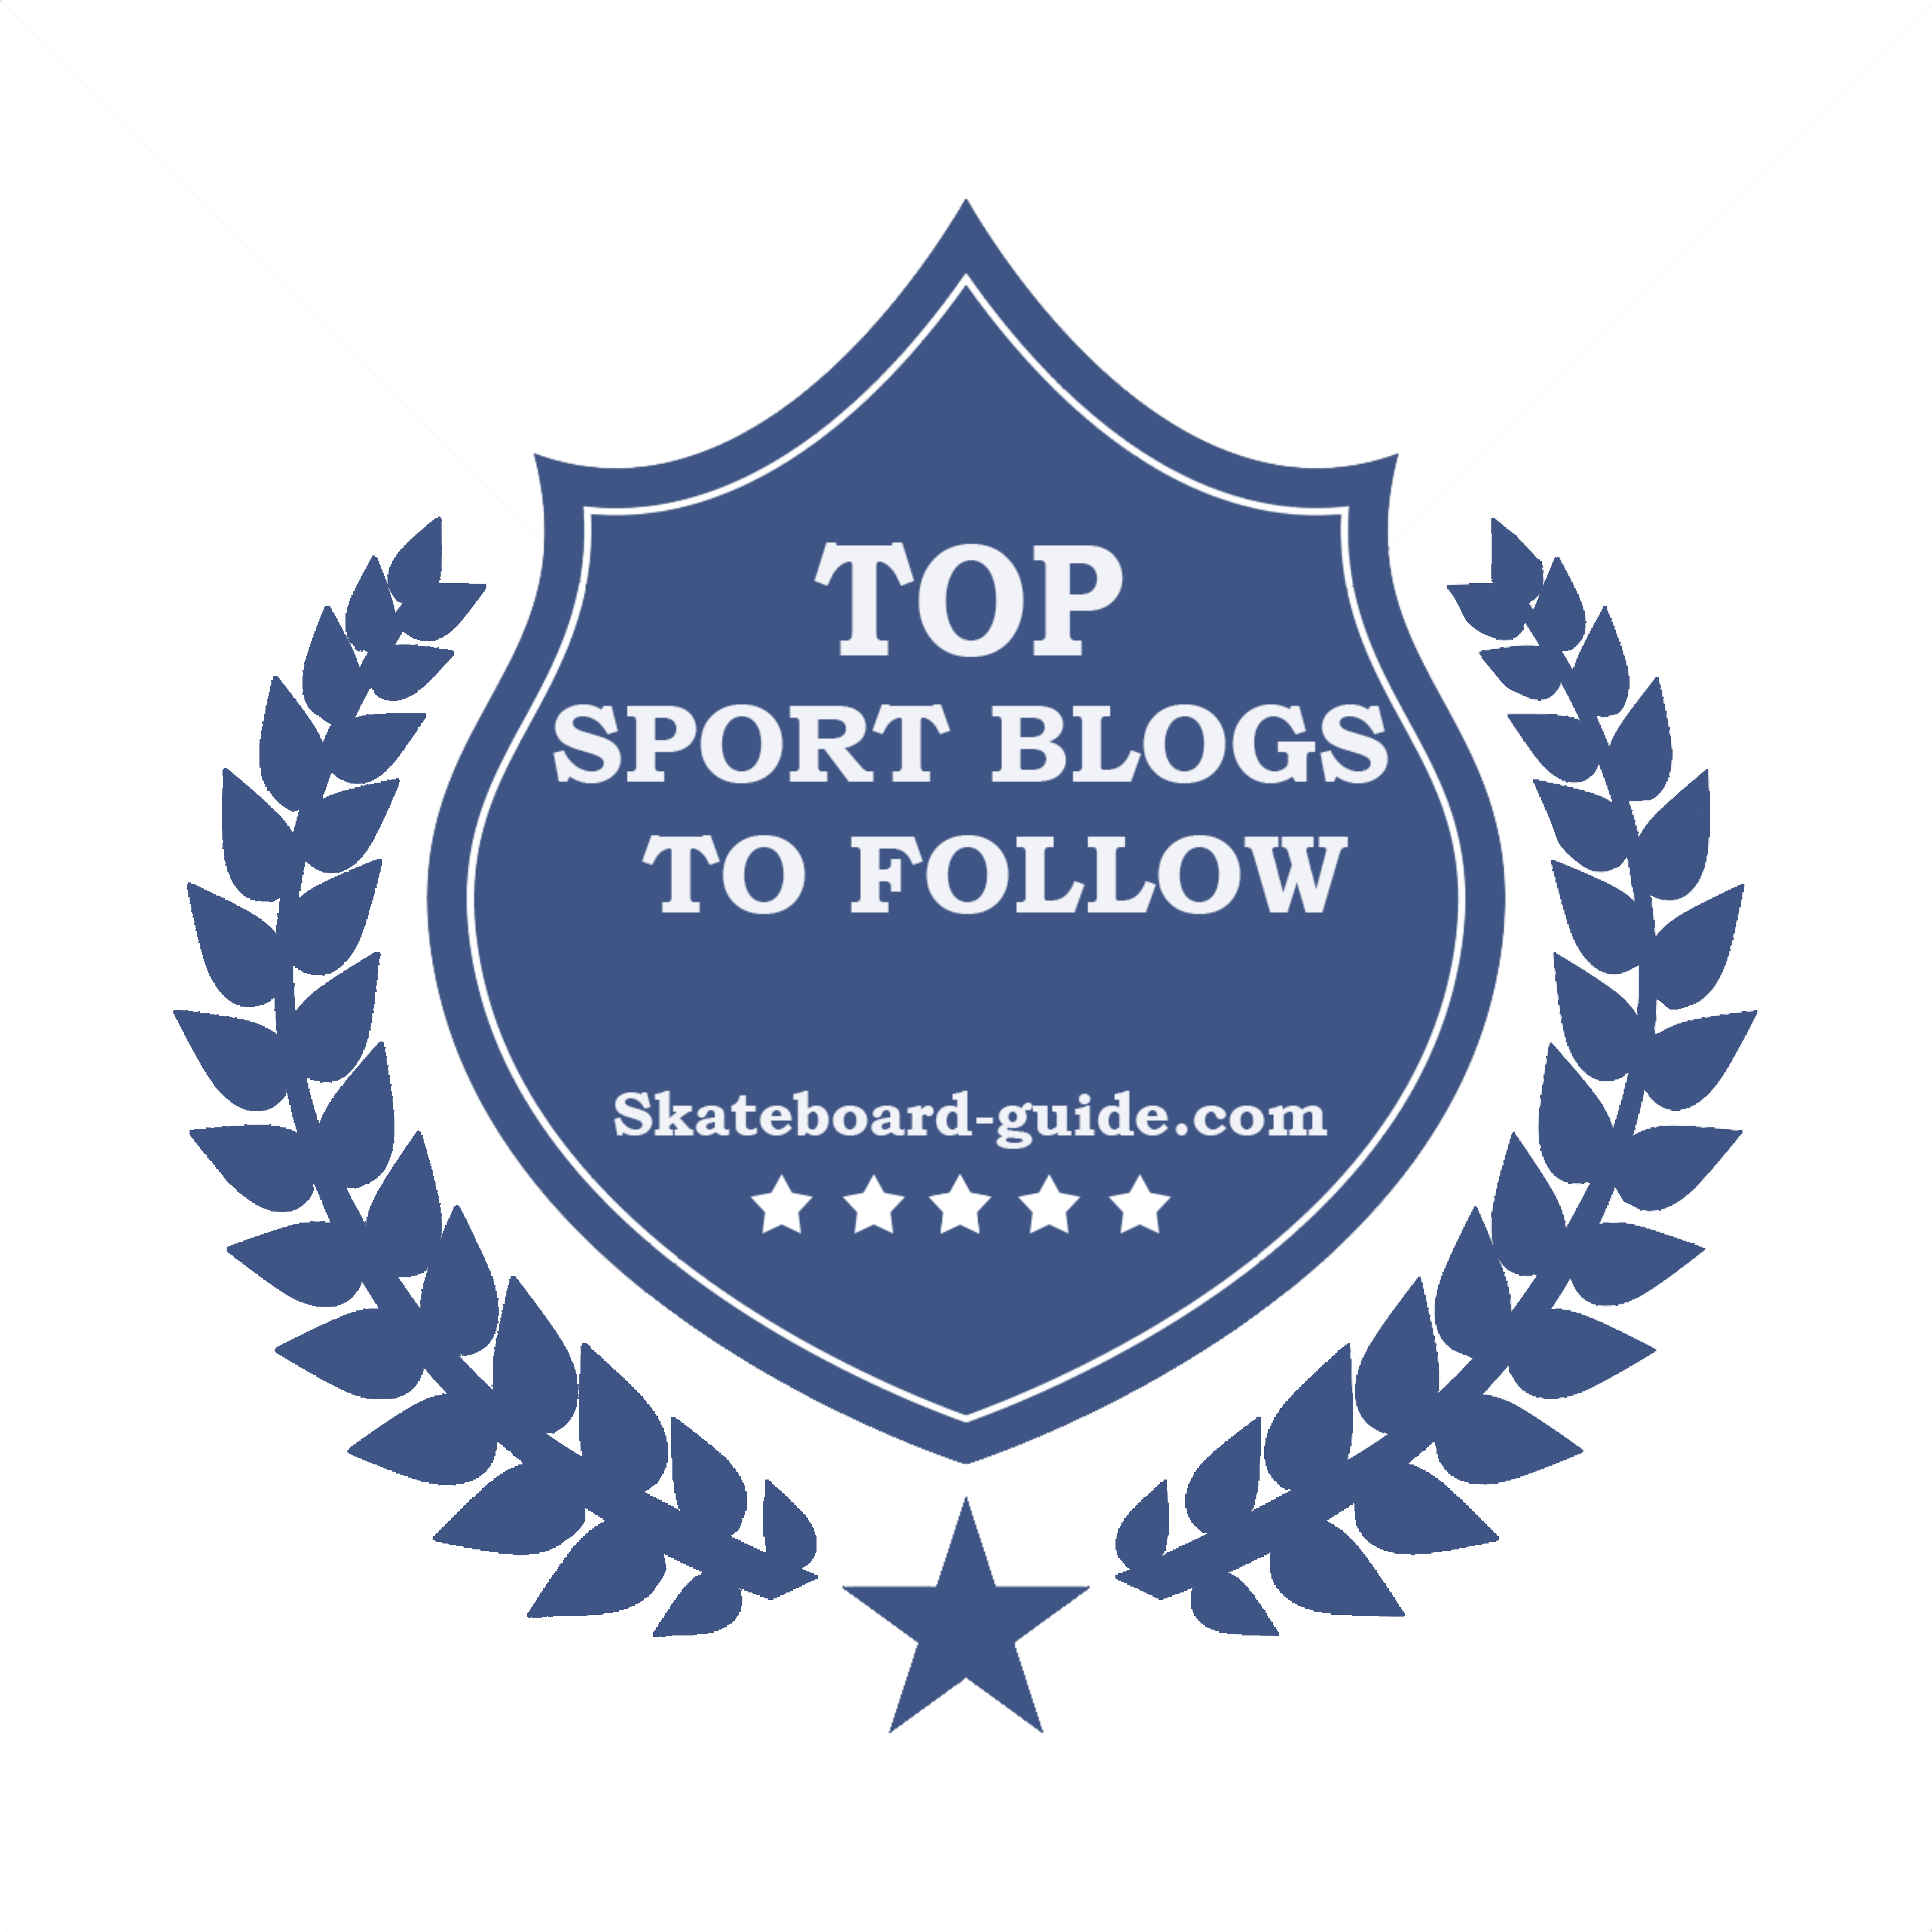 TOP SPORTS BLOG TO FOLLOW